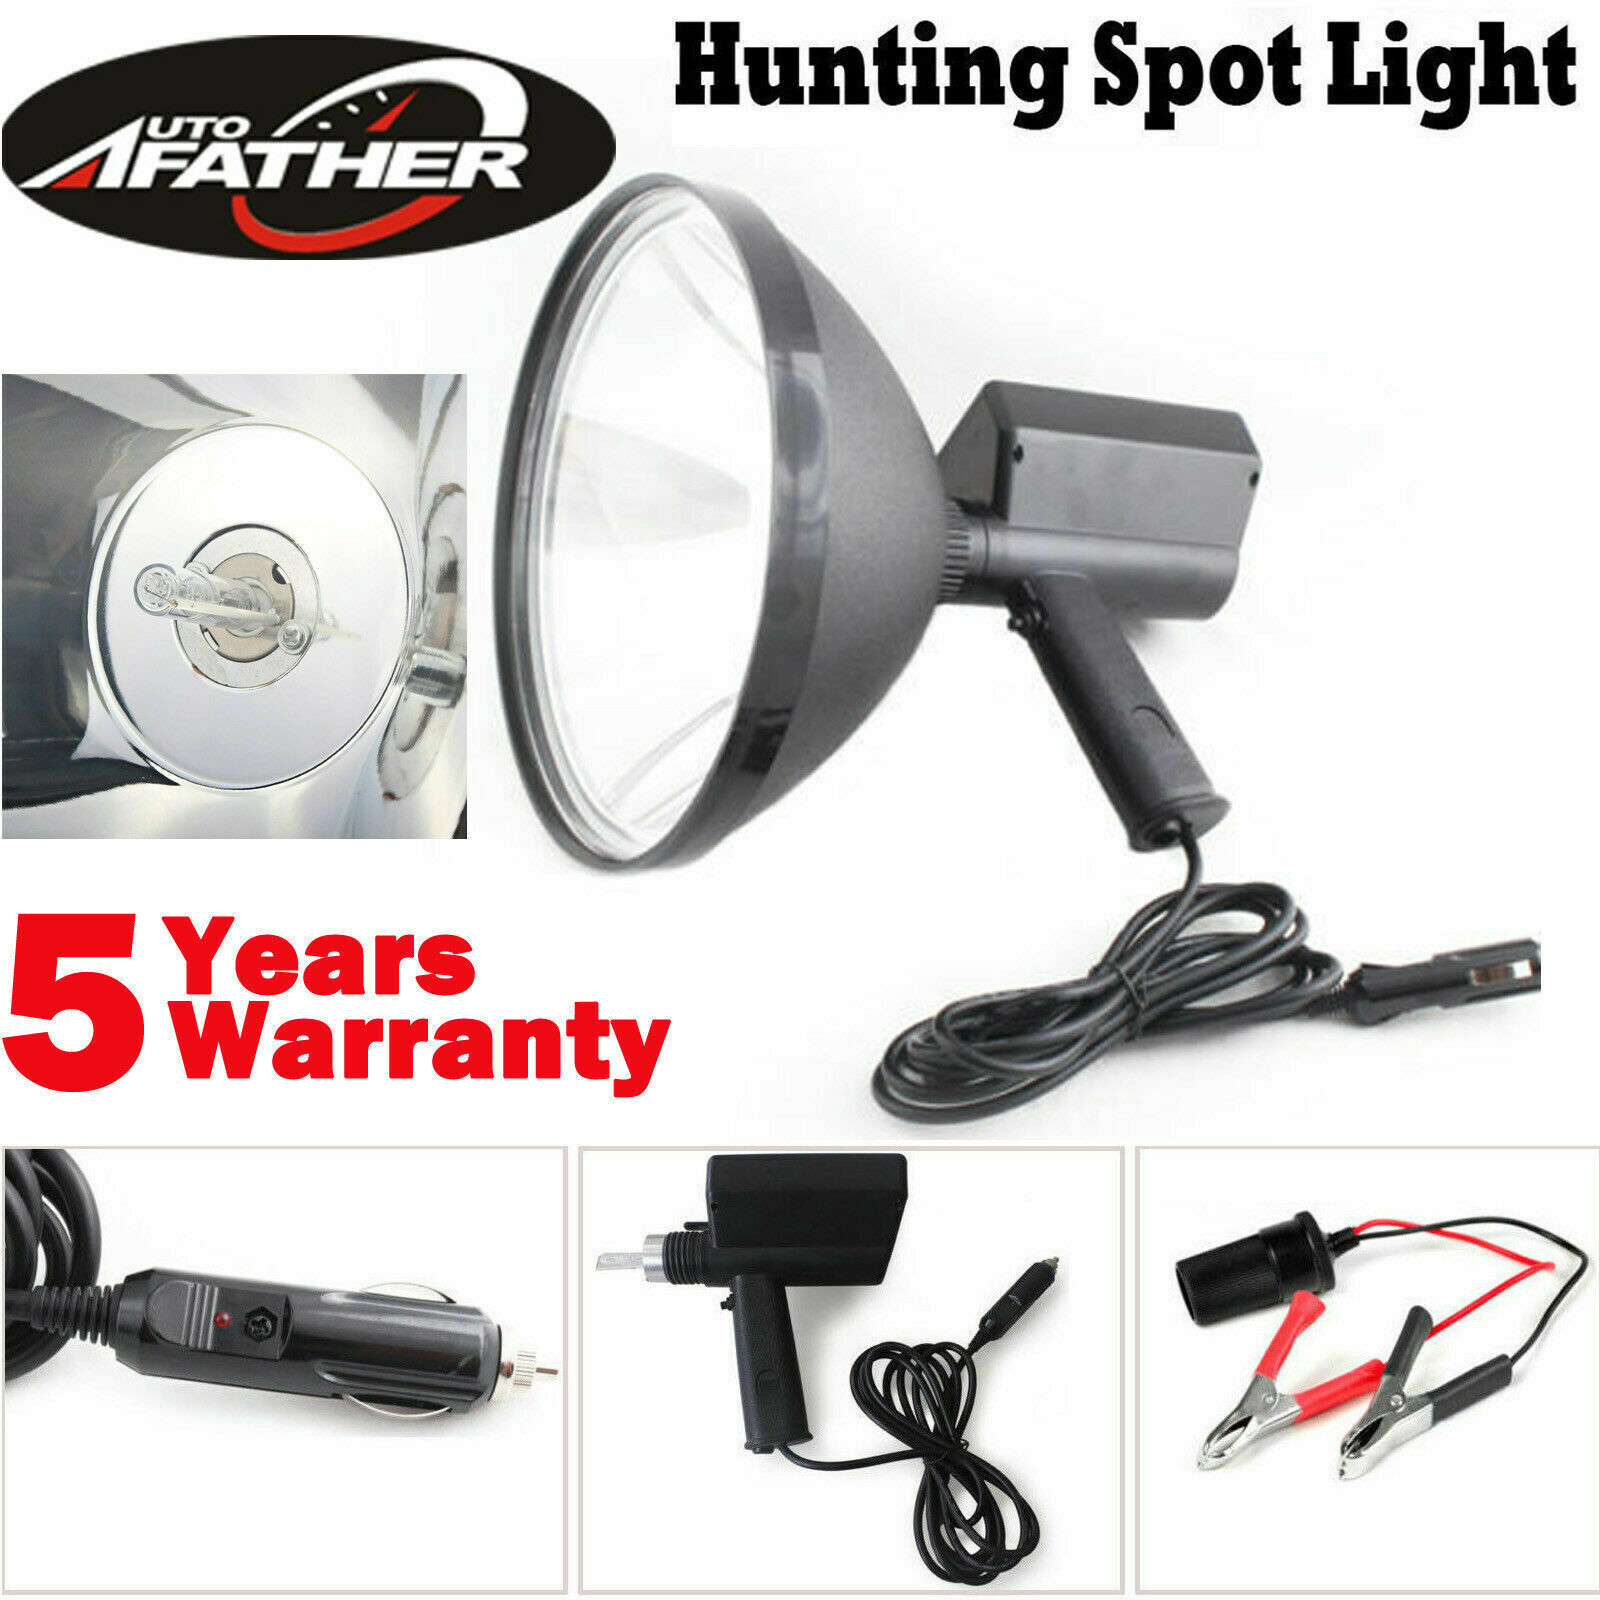 280000LM 12V 2800W HID 9in 240mm Handheld Lamp Camping  Hunting Fishing Spotlight  good quality